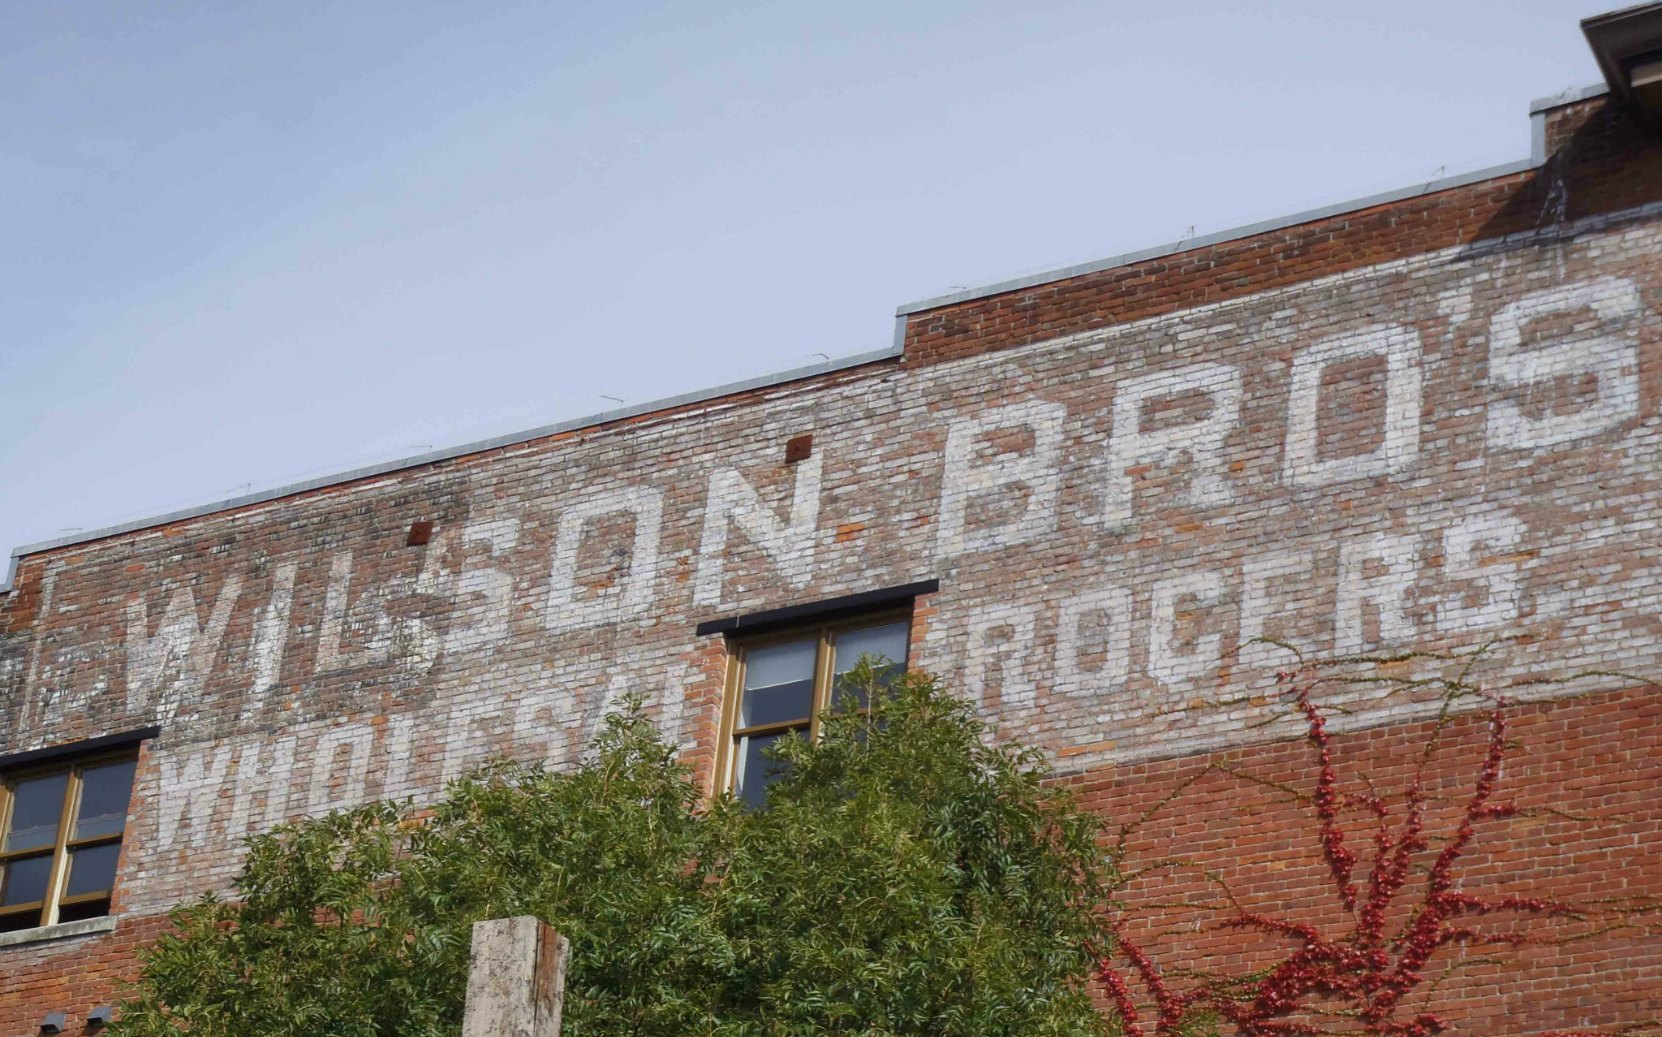 532 Herald Street, built in 1908-1909 as a warehouse for Wilson Brothers. The Wilson Brothers sign is still visible on the west side of the building.